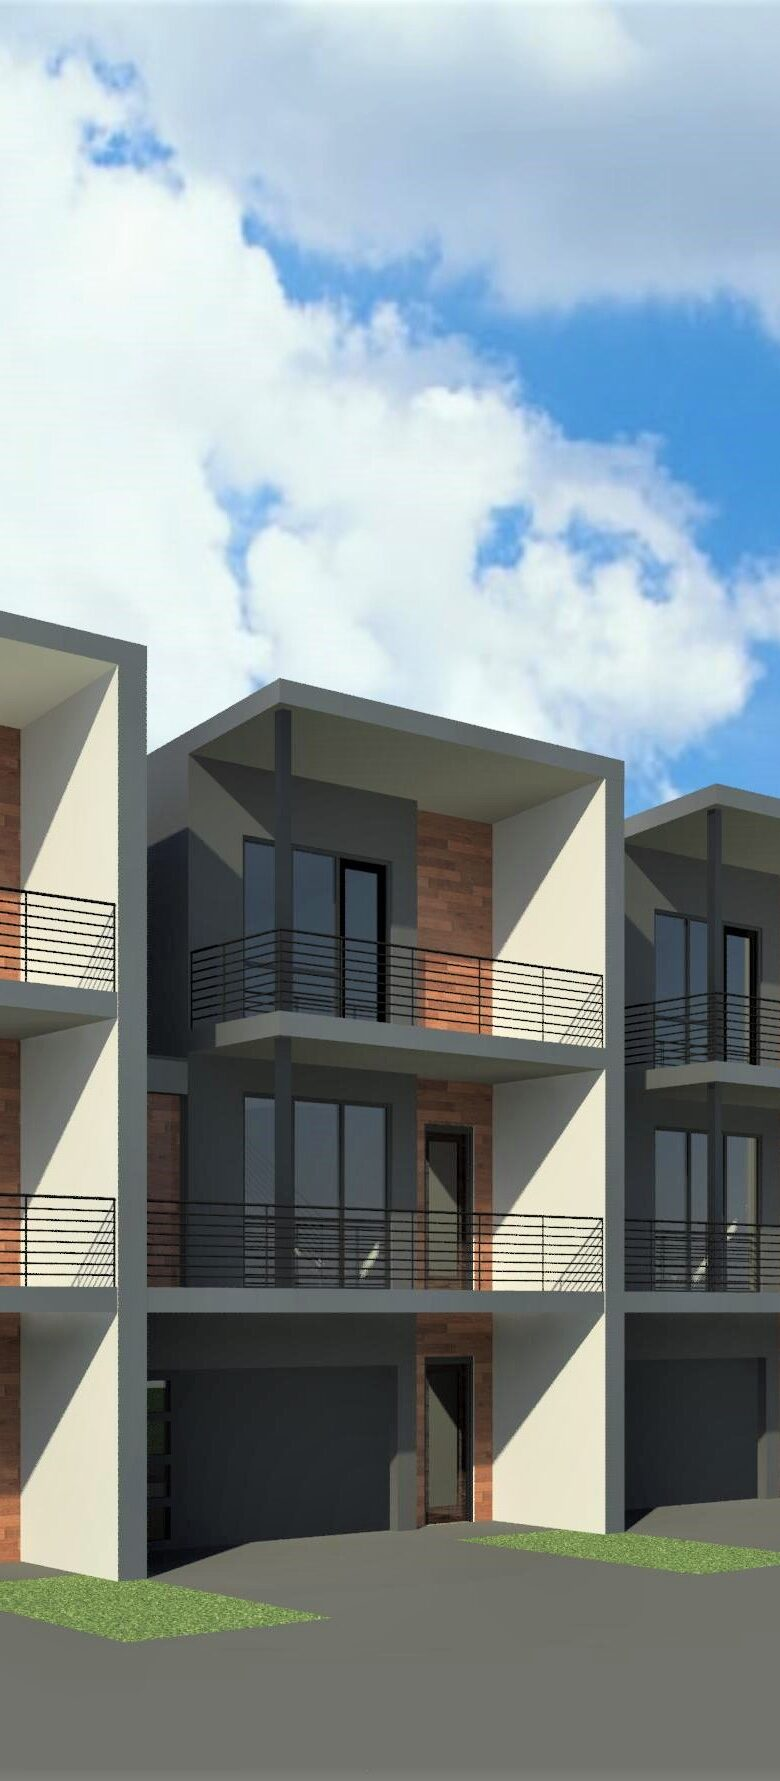 Alpha-Bulders-Group-New-Townhomes-South-Lamar-Austin-Texas-Rendering